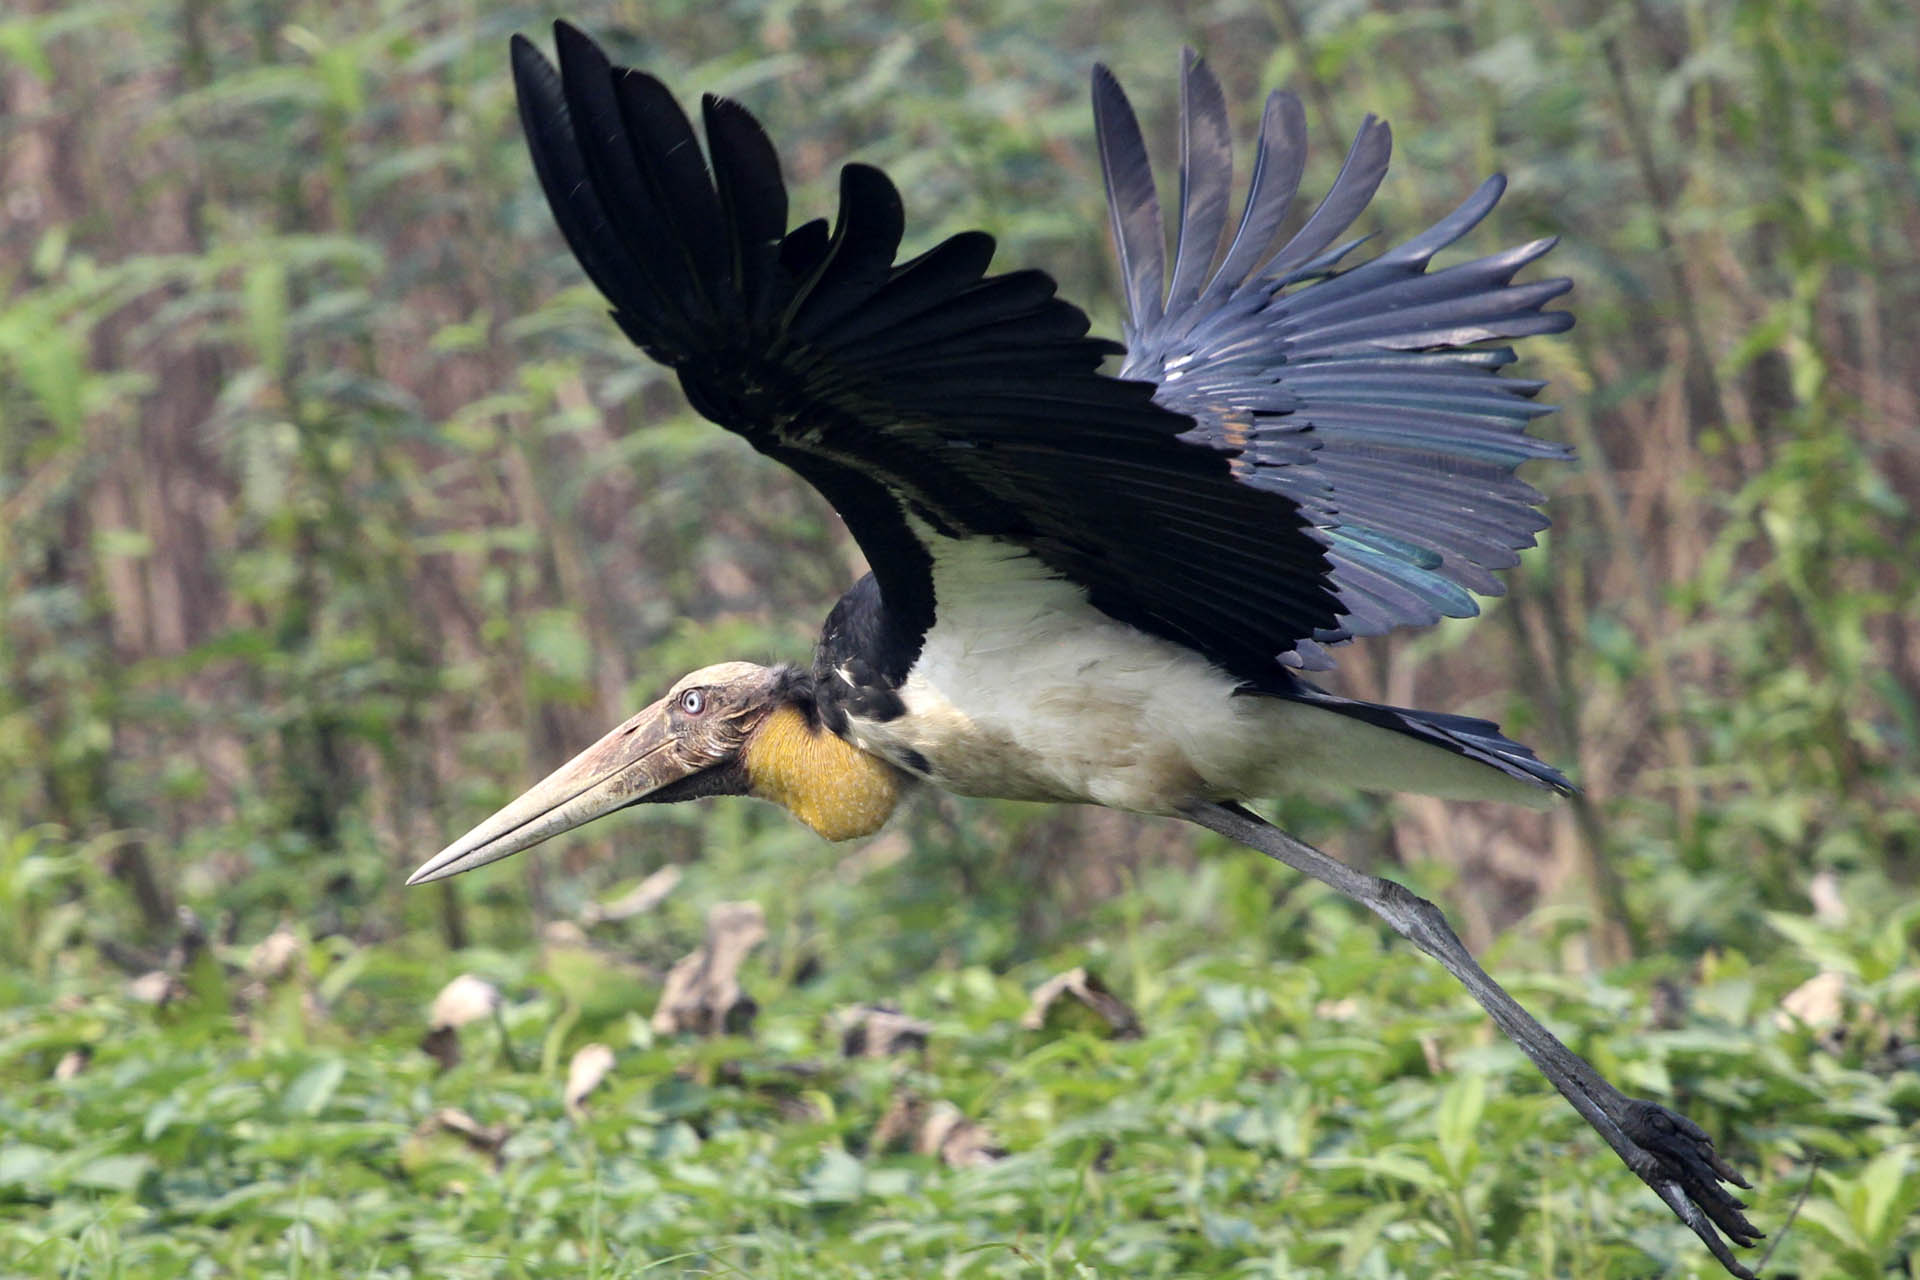 Lesser Adjutant - ready to fly by Luis Mario Arce